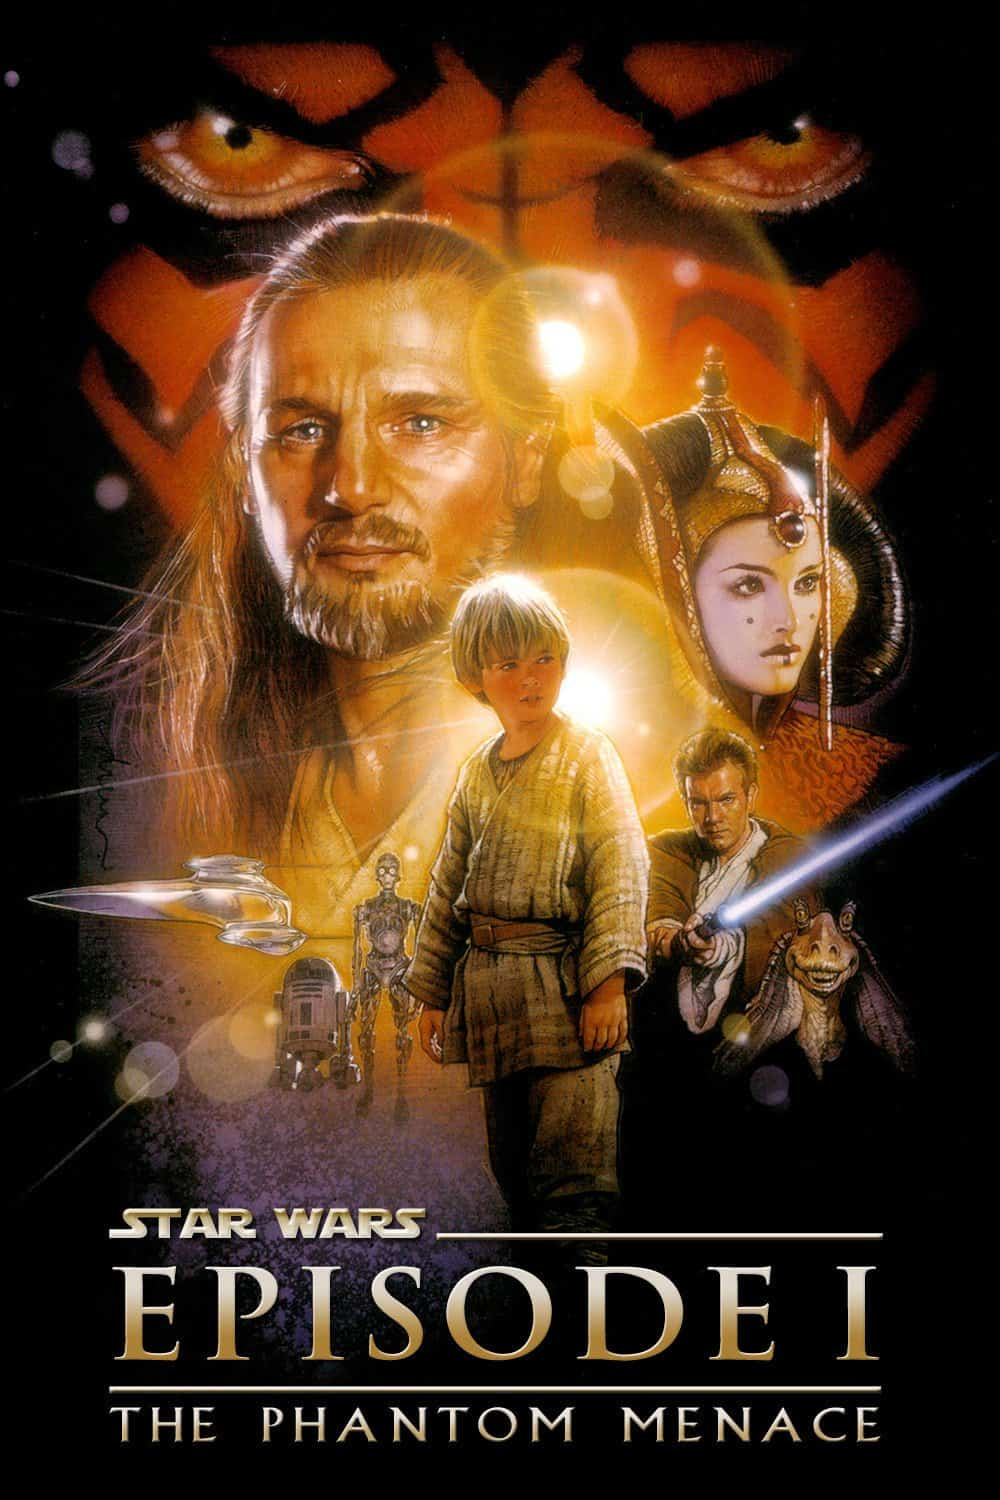 Star Wars: Episode I - The Phantom Menace, 1999